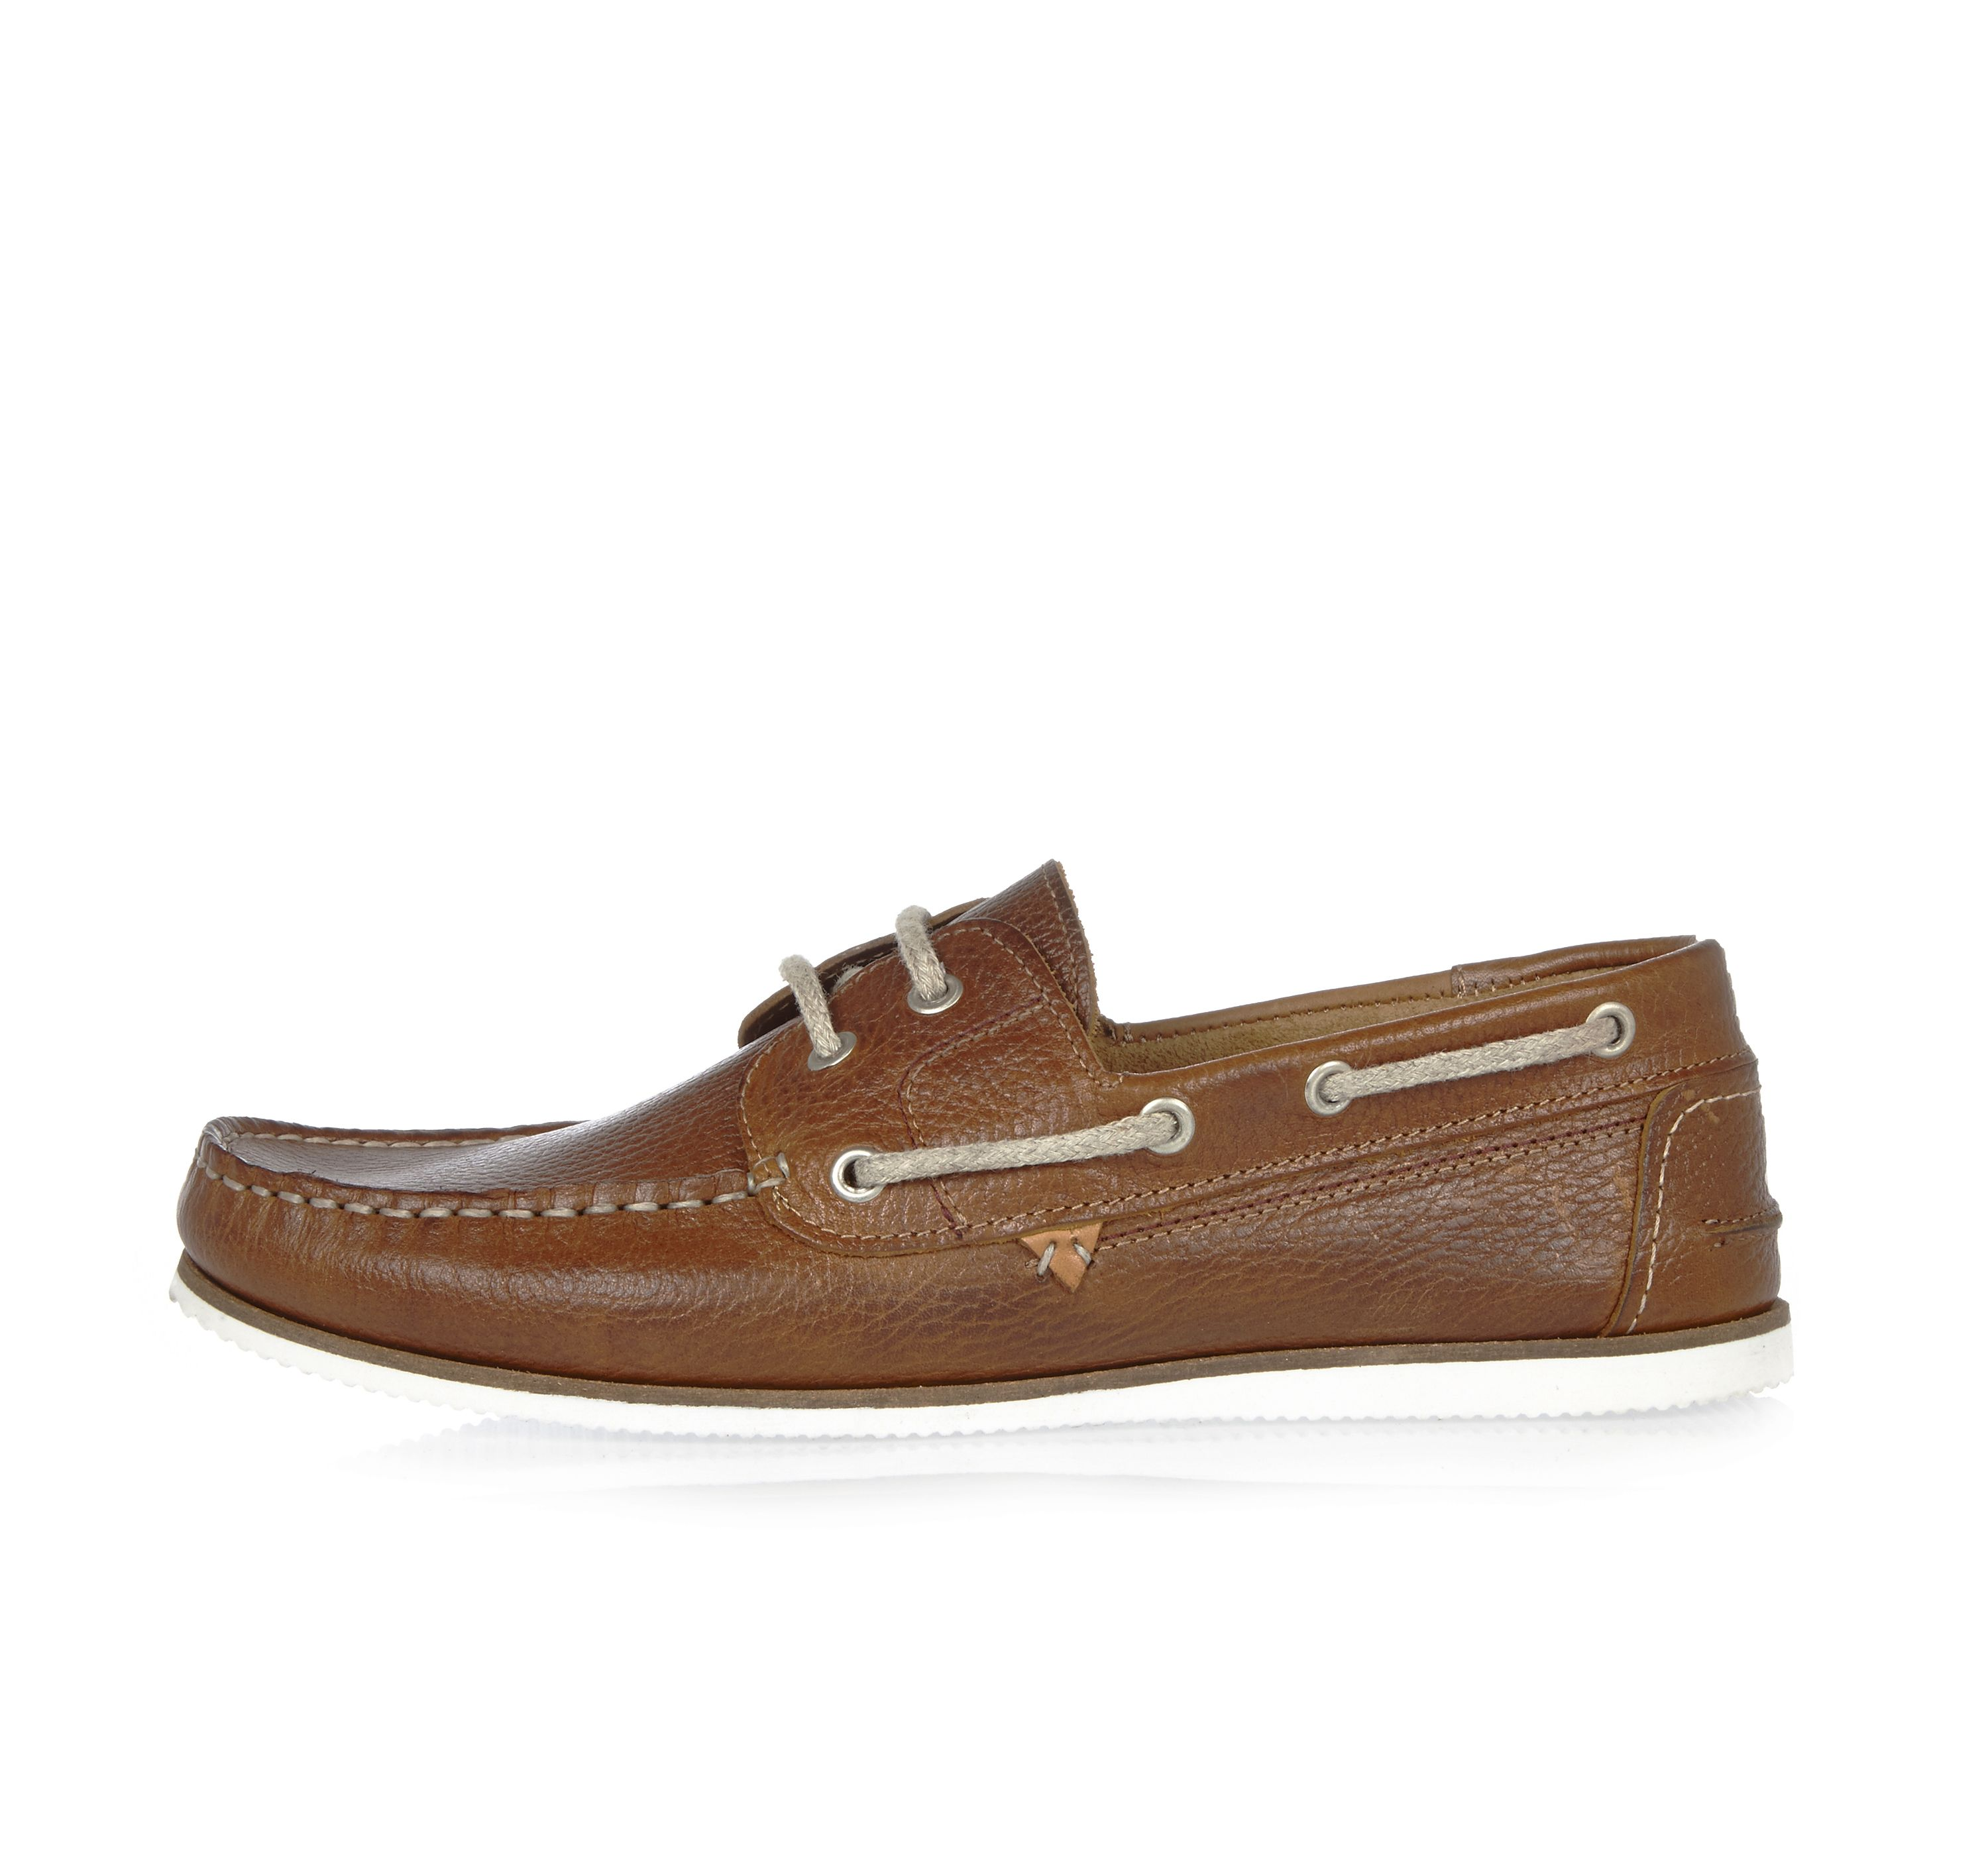 River Island Mens Tan leather boat shoes